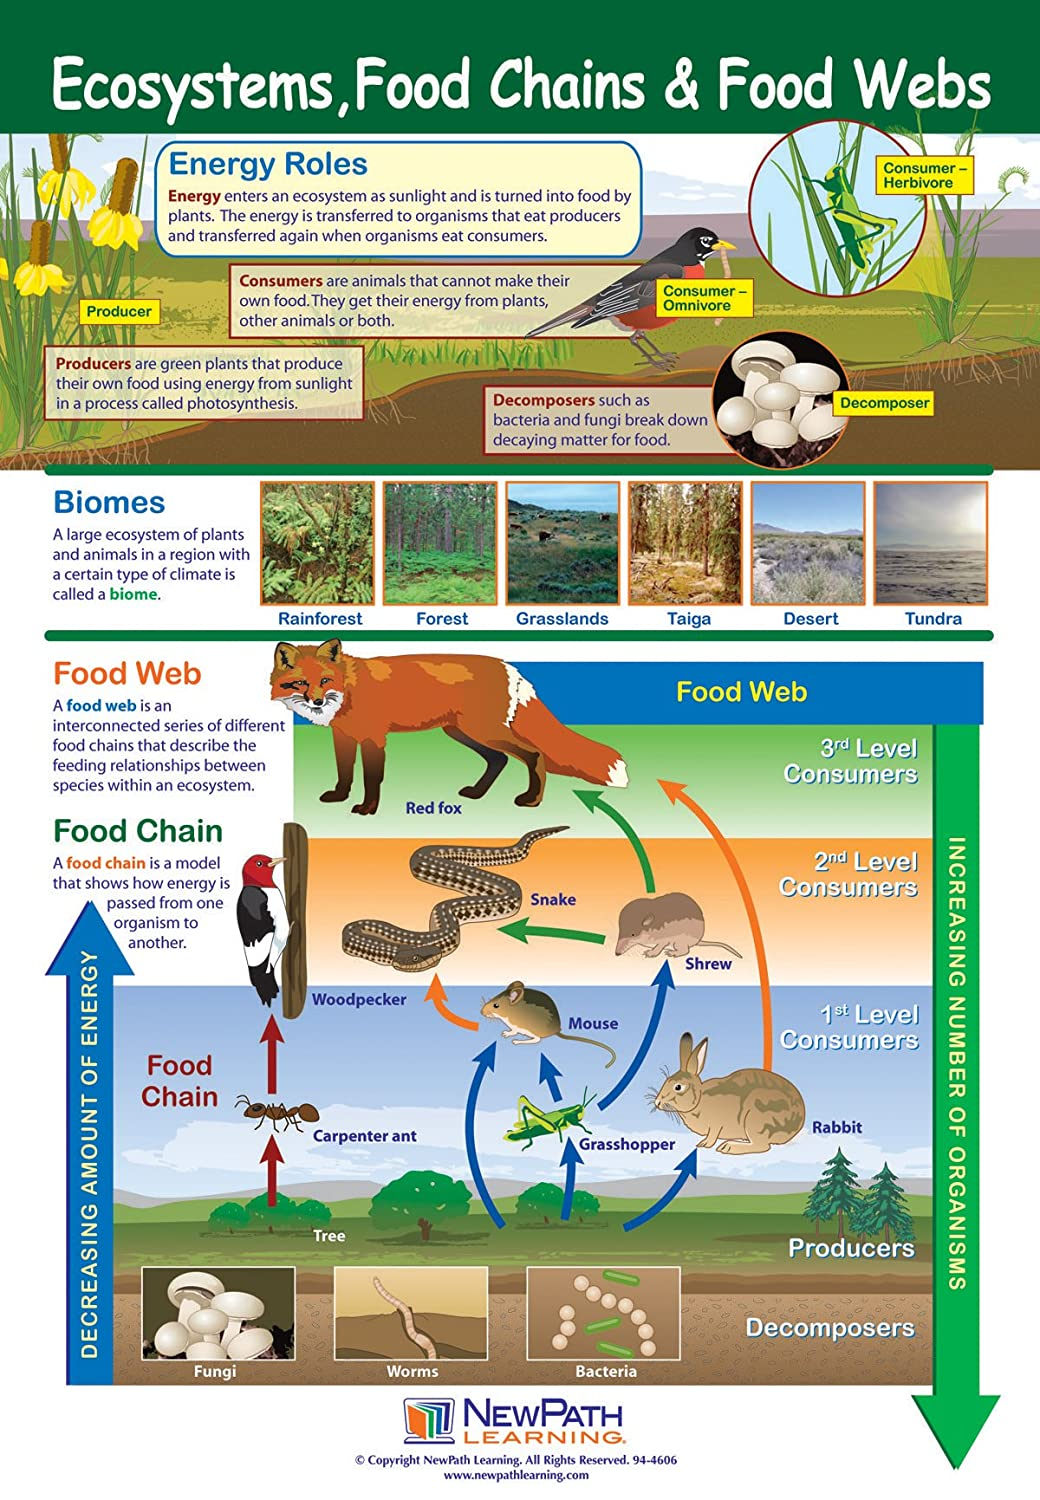 Ecosystems, Food Chains and Food Webs Poster - Laminated, Full-Color, 23